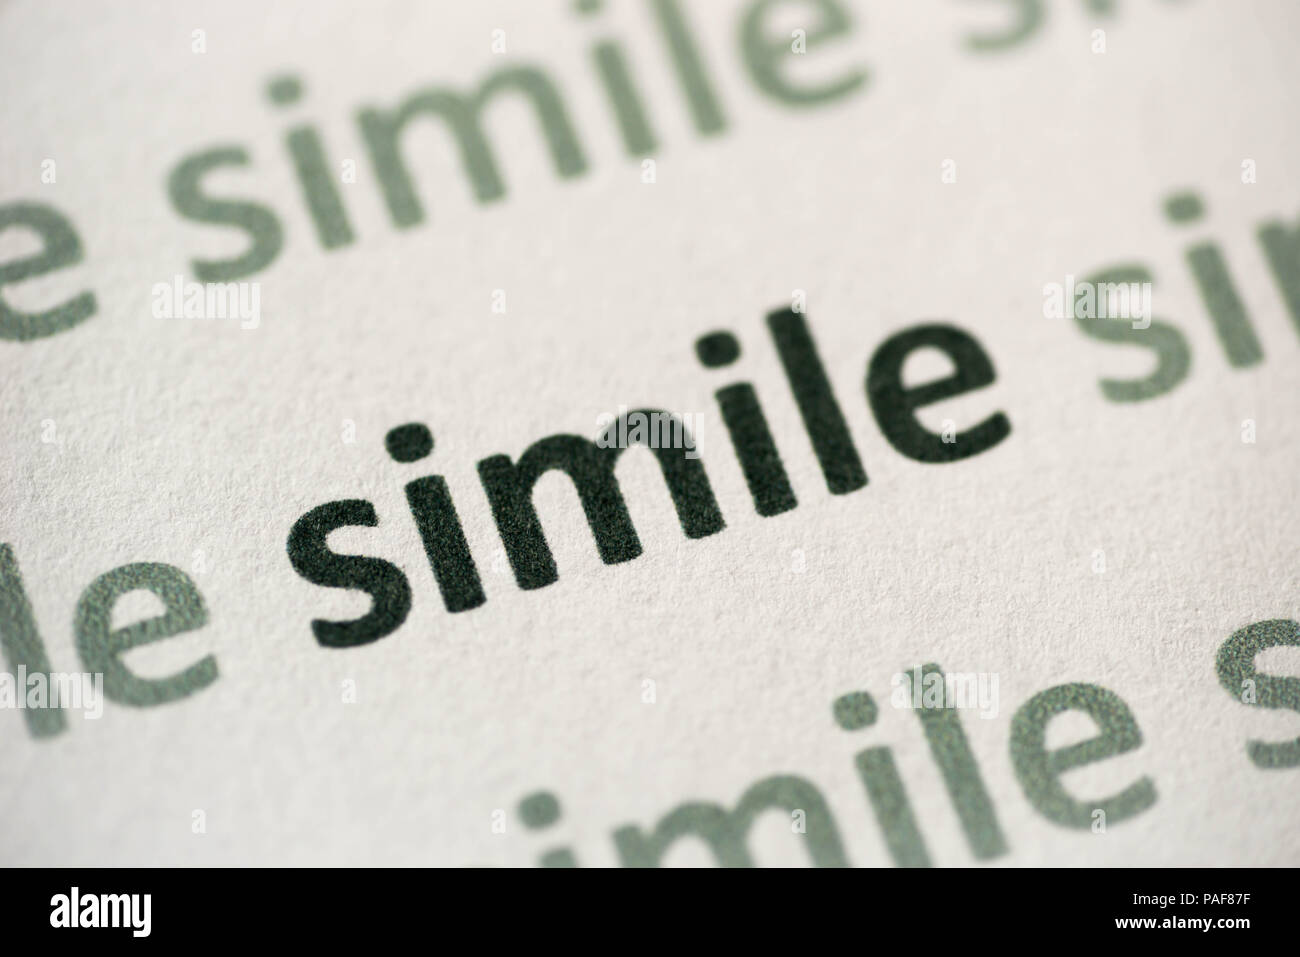 word similie printed on white paper macro - Stock Image